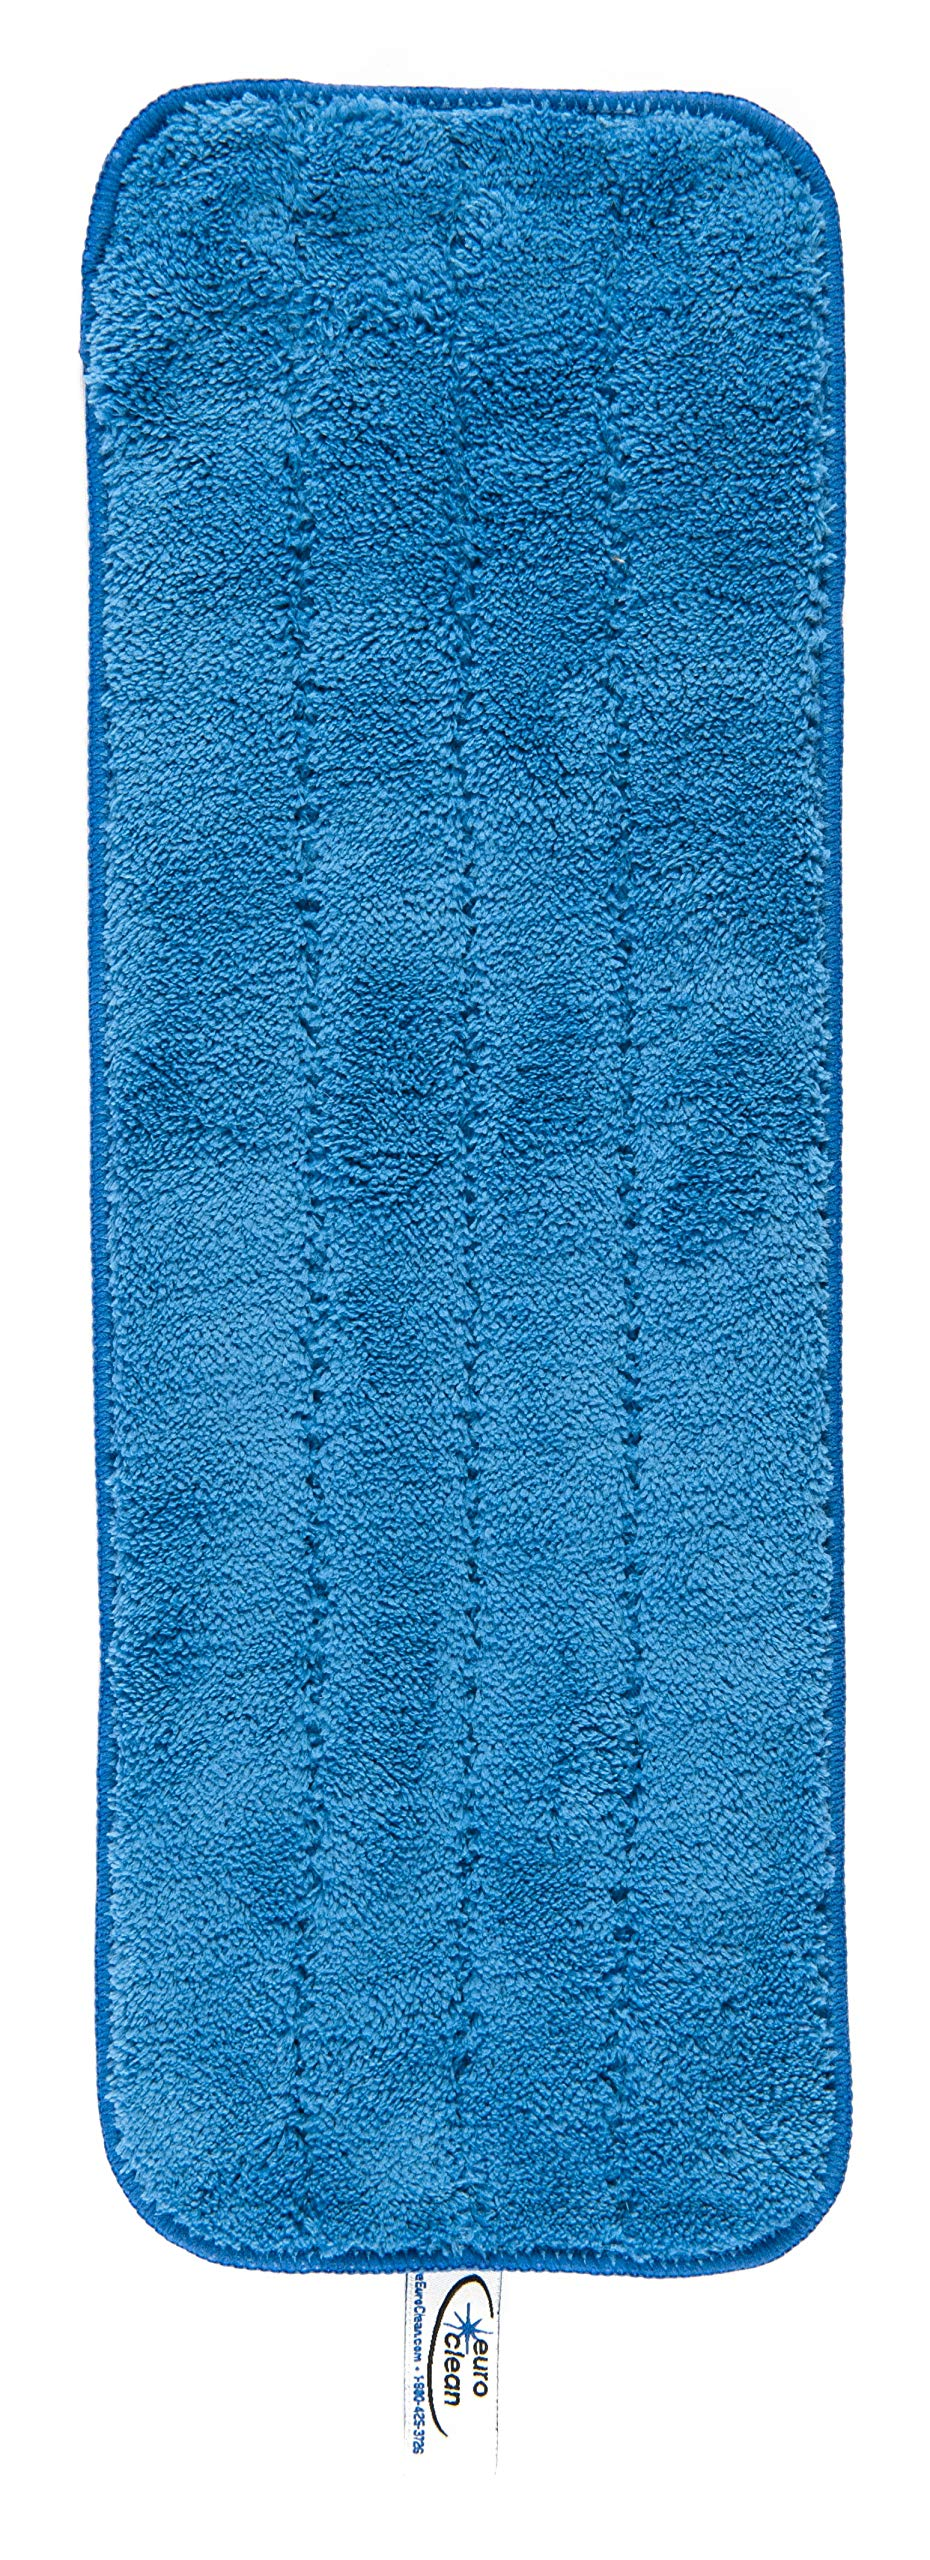 2 Microfiber Mop Pads Washable Commercial Quality, Replacement Refills for Velcro Style Flat Mops - Use Wet or Dry by Euroclean